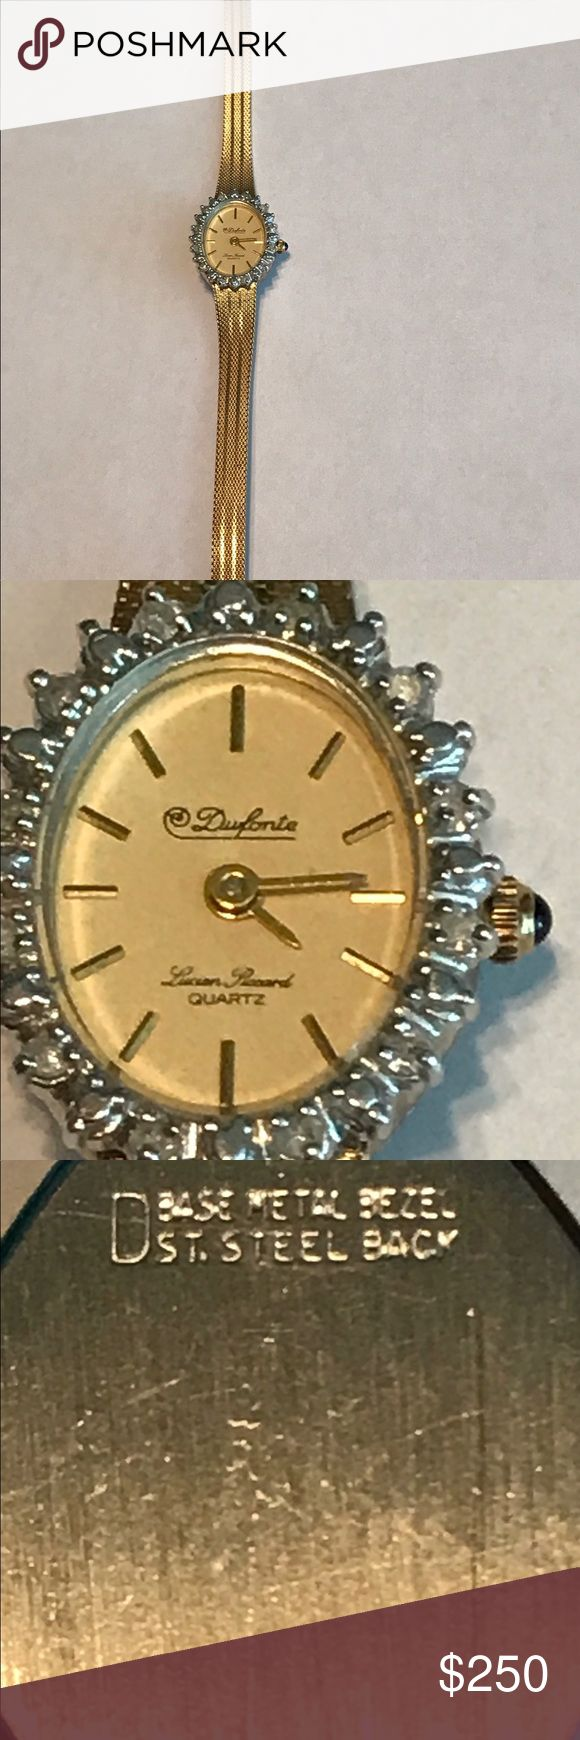 This watch is in excellent condition Needs a new battery. Real diamonds . This is yellow gold filled. In excellent condition. Vintage watch no scratches on the face. Please feel free to make reasonable offers. Lucien Piccard Accessories Watches